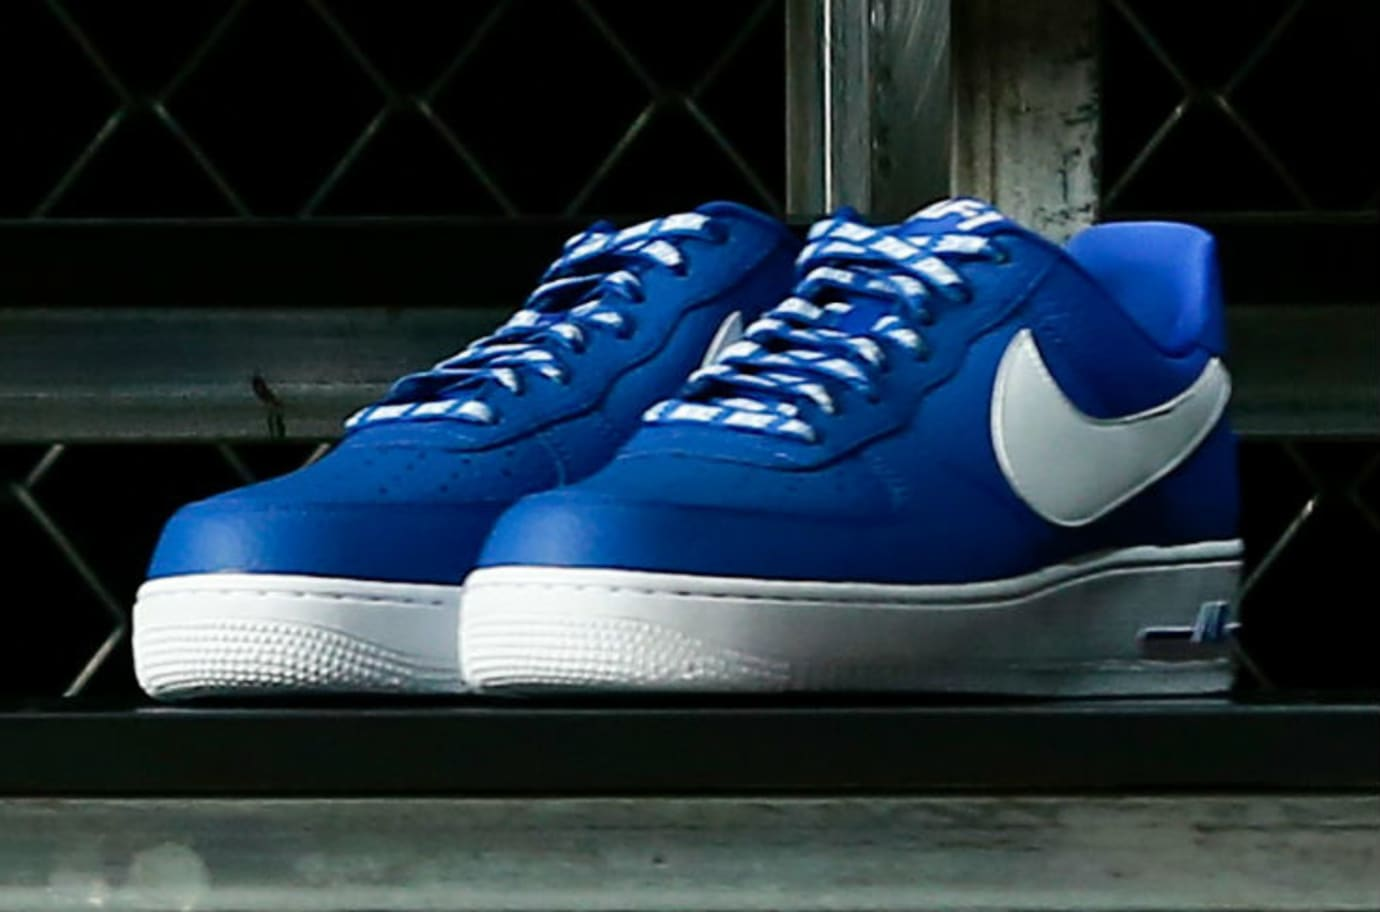 Nike Air Force 1 Low Statement Game NBA Logos Royal